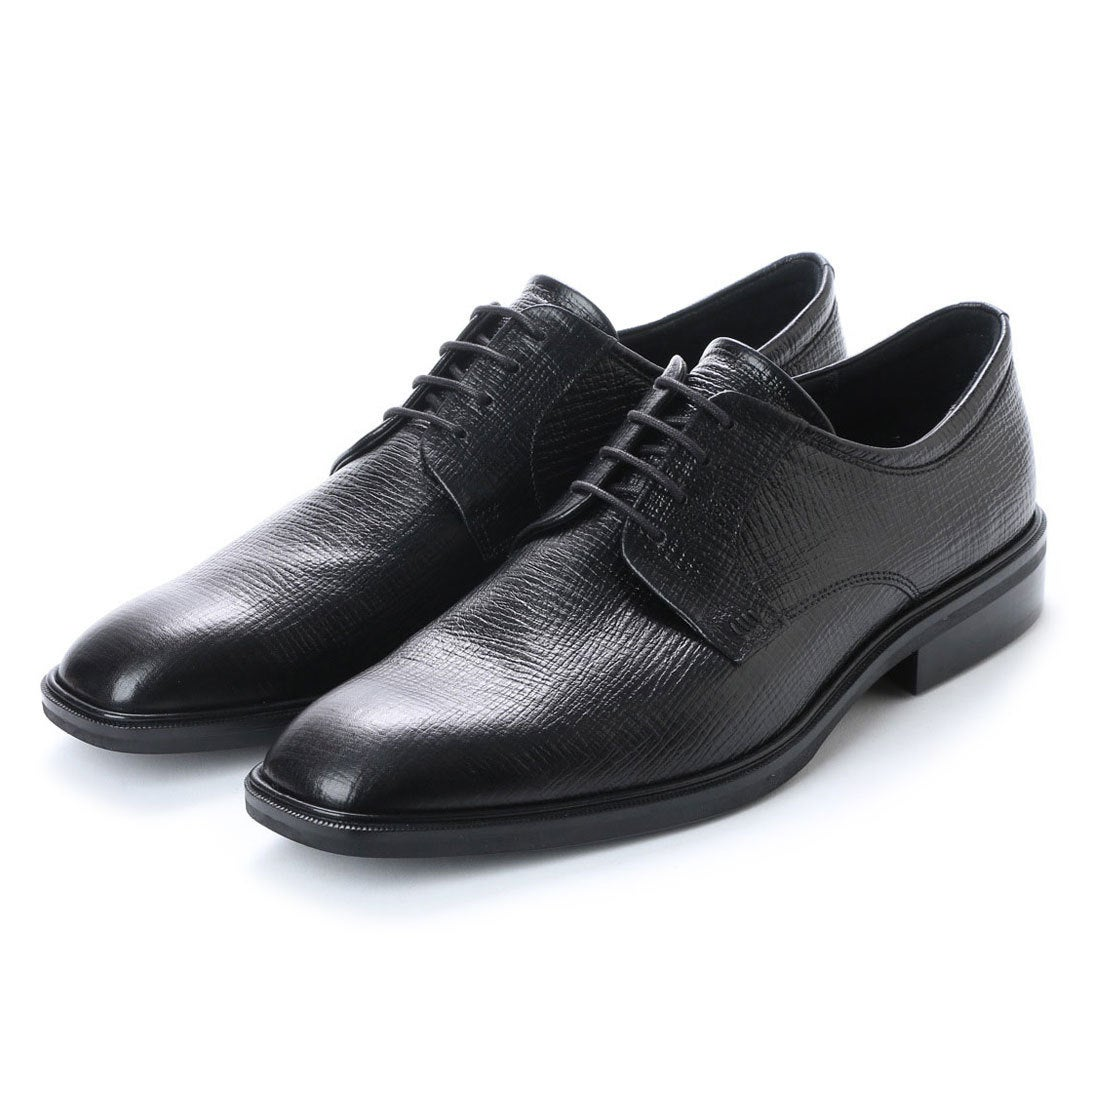 エコー ECCO Illinois Plain Toe Tie (BLACK) メンズ